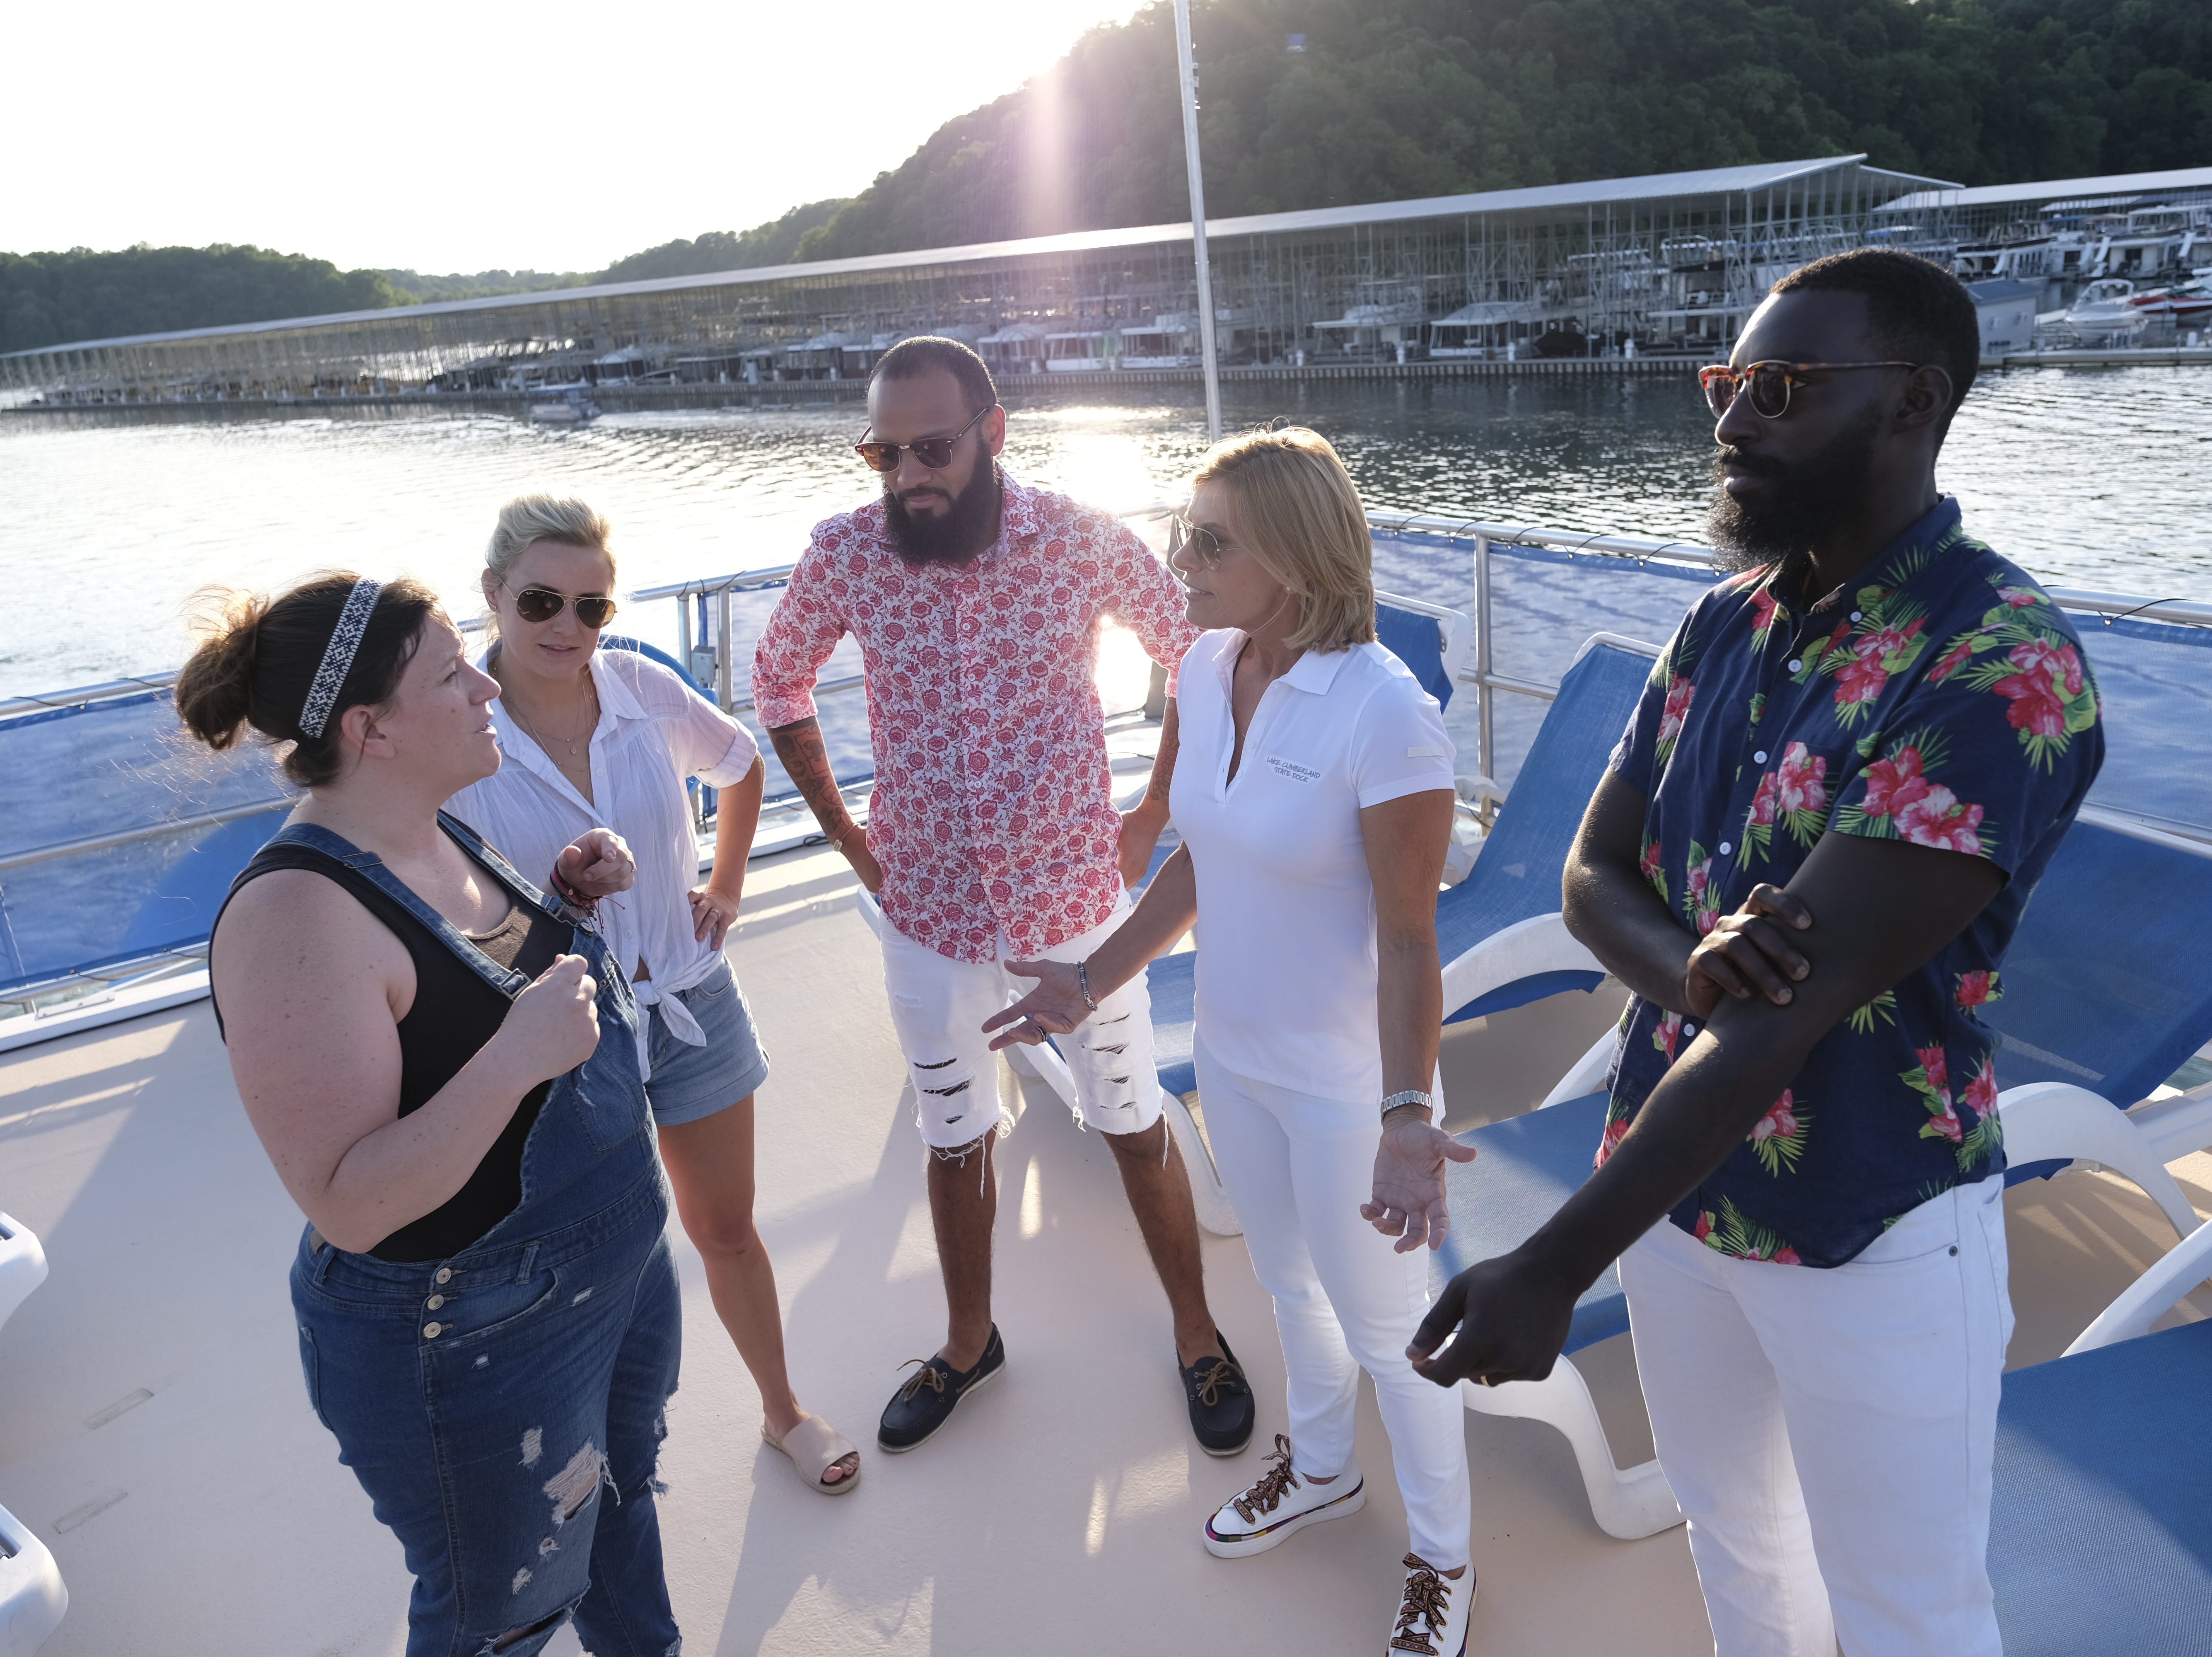 (from left): Contestant Sara Bradley, Kelsey Barnard, Justin Sutherland and Eric Adjepong brainstorm with Captain Sandy from 'Below Deck' on episode 8 of Bravo's 'Top Chef: Kentucky' season.